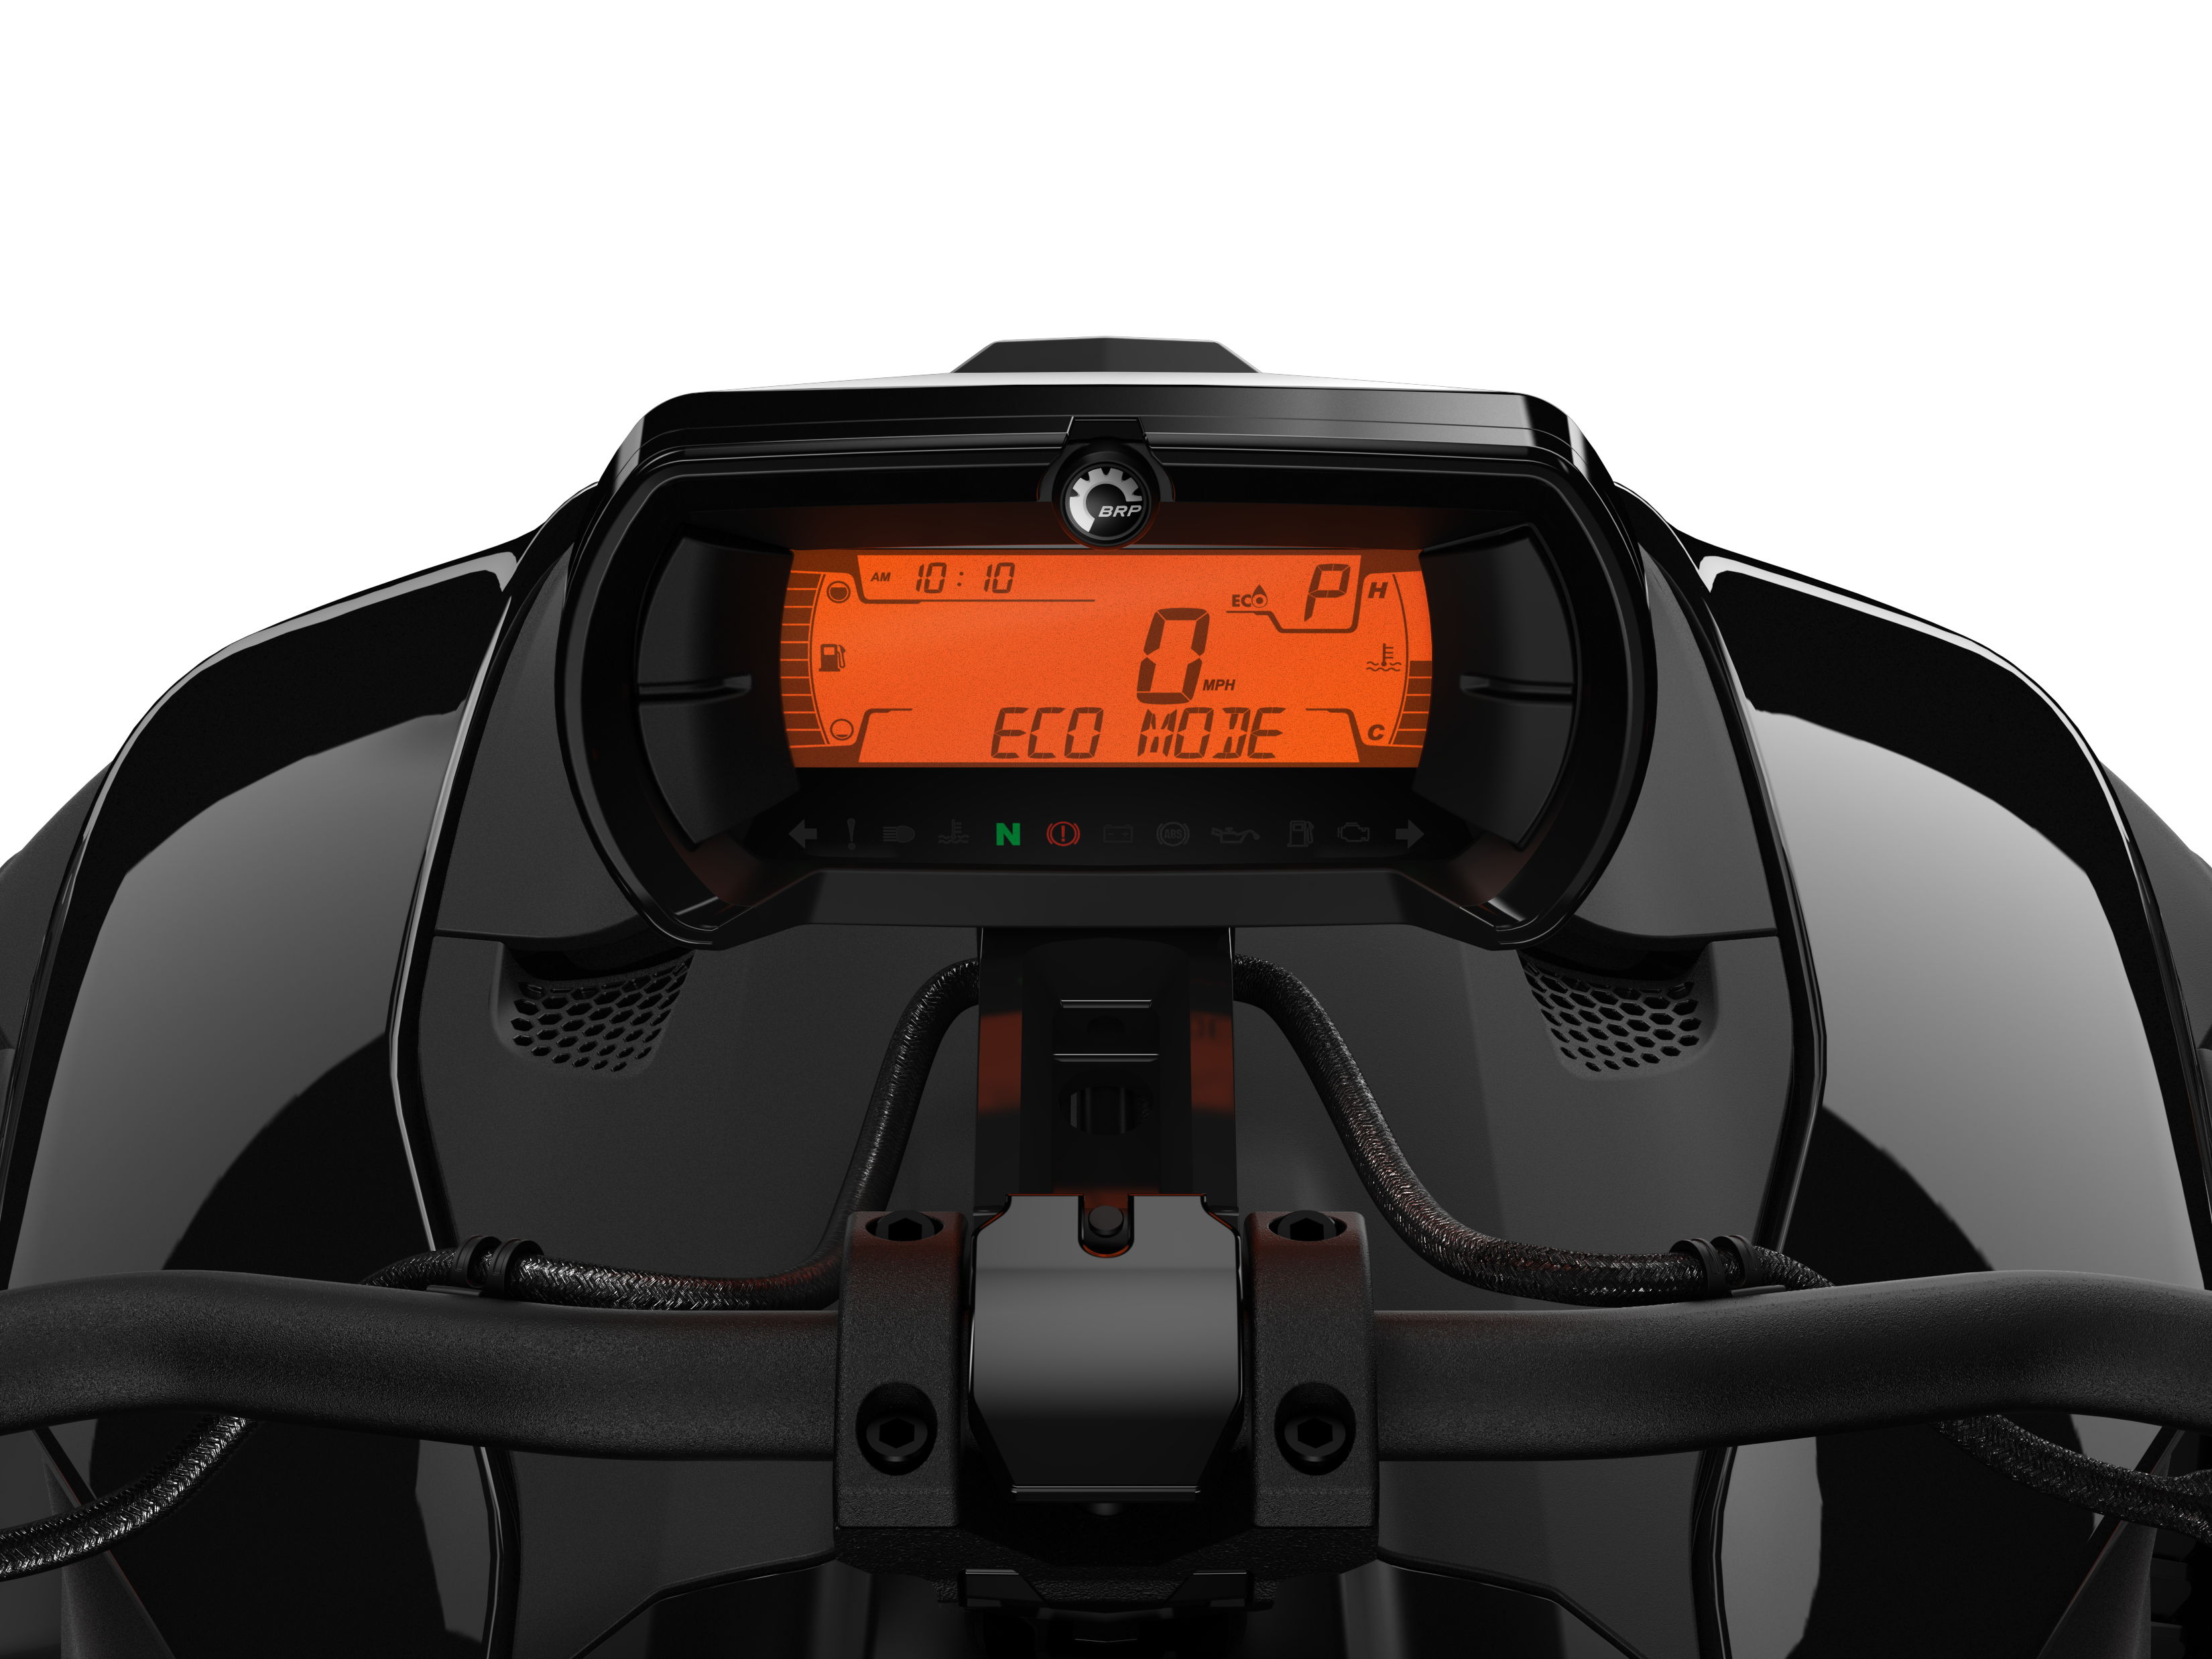 The driver's seat view of a Can-Am Ryker vehicle's console with Eco Mode Smart Assist activated